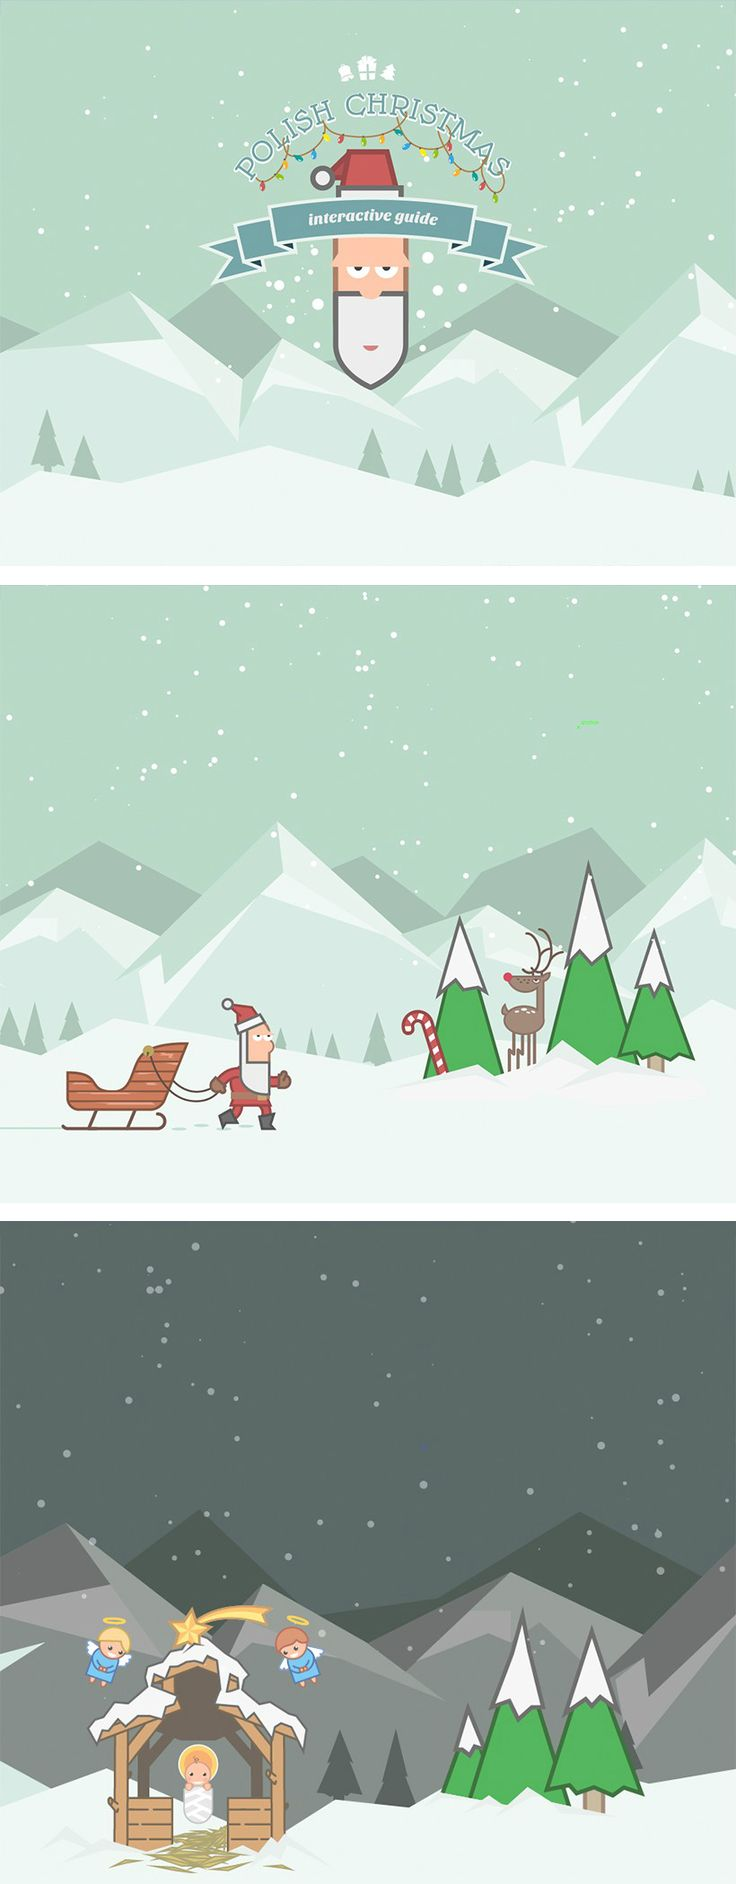 """We thought it's time to sprinkle a little unconventional Christmas card in 2014.  """"Polish Christmas: interactive guide"""" is a horizontal scrolling, visually rich, illustration-driven HTML5 journey explaining Christmas traditions in Poland. Our goal was to educate users (including our foreign clients) about traditional Polish Christmas celebrations. We've come up with a highly interactive and engaging scrolling site full of fun, SVG animated graphics. www.polishchristmasguide.com/"""